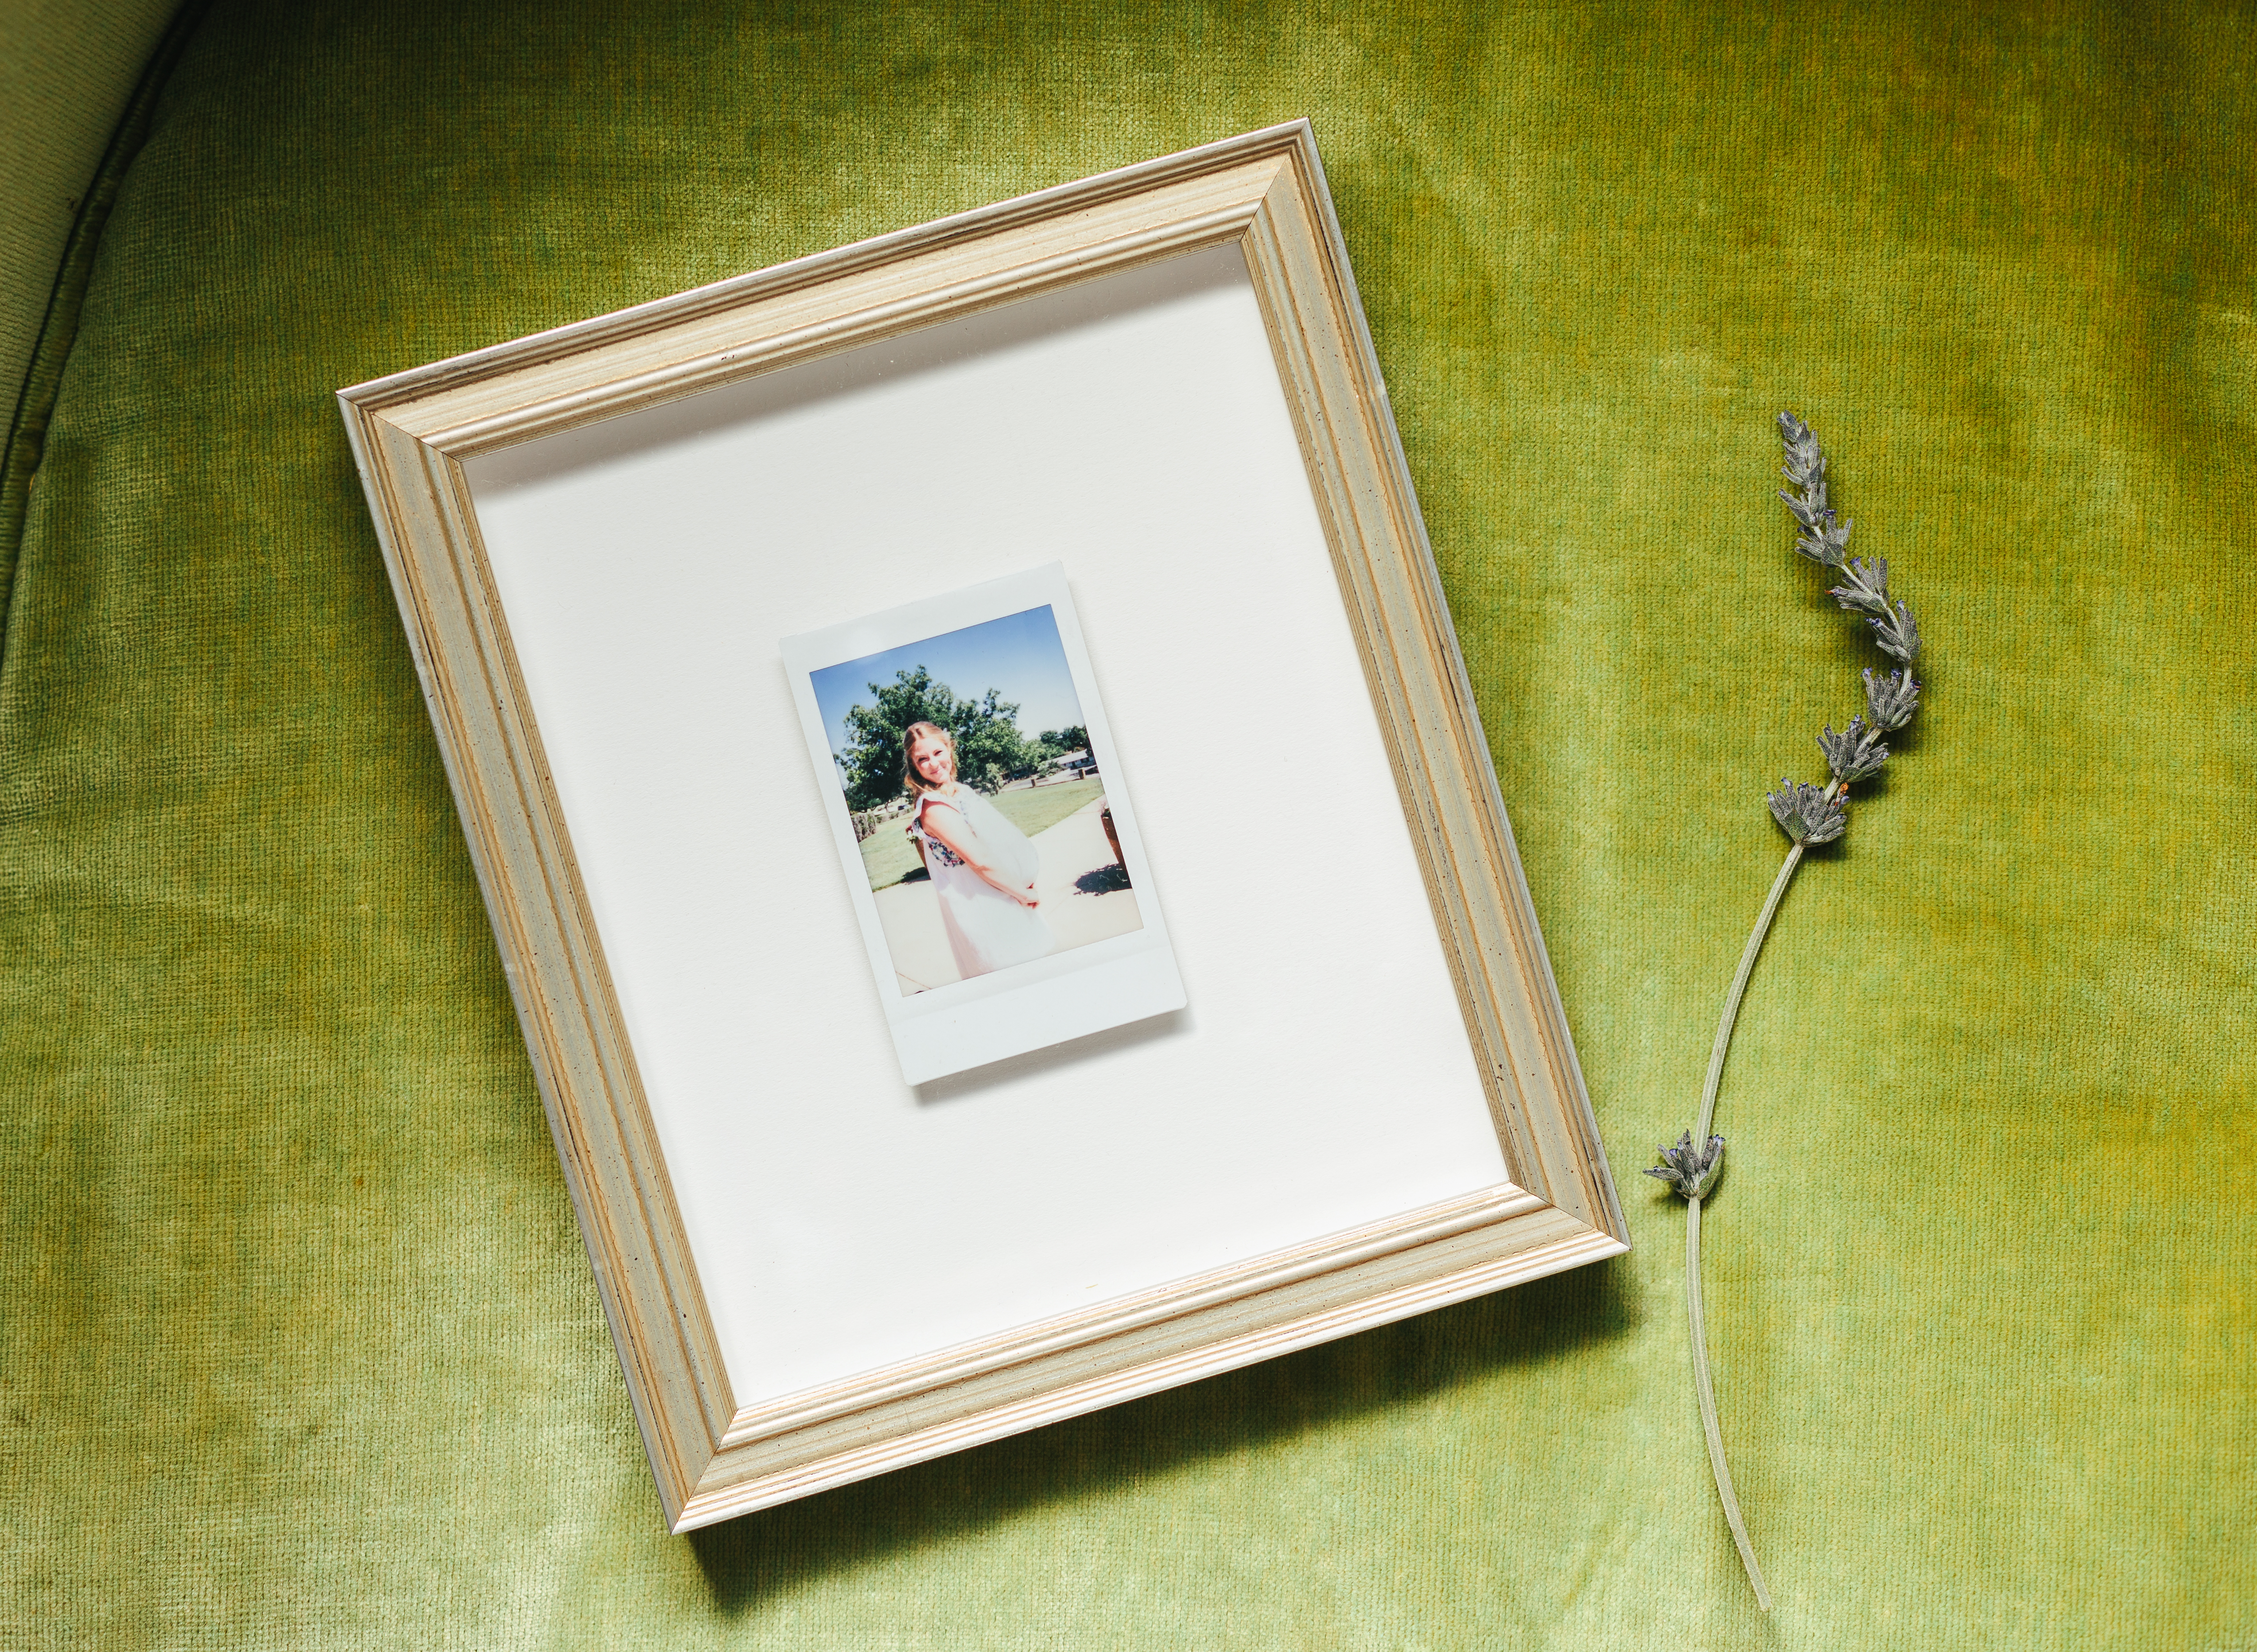 10 One-of-a-Kind Gifts for Mom